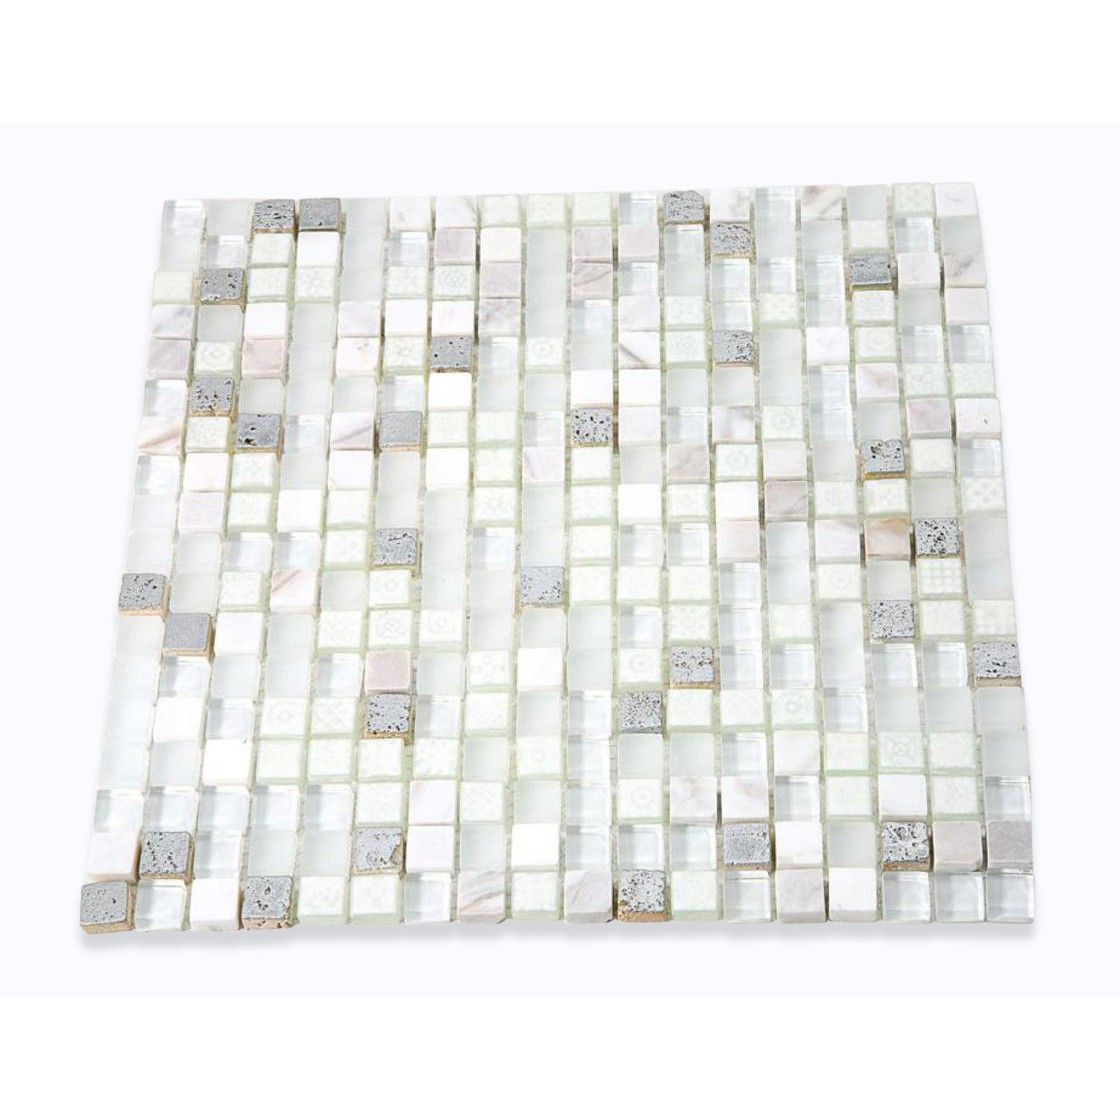 Shop 12 X 12 Alloy Deco Blizzard Polish Frosted Painted Foil Stone And Glass Tile In White Painted Silver Foil Glass Tile Glass Mosaic Tiles Mosaic Glass